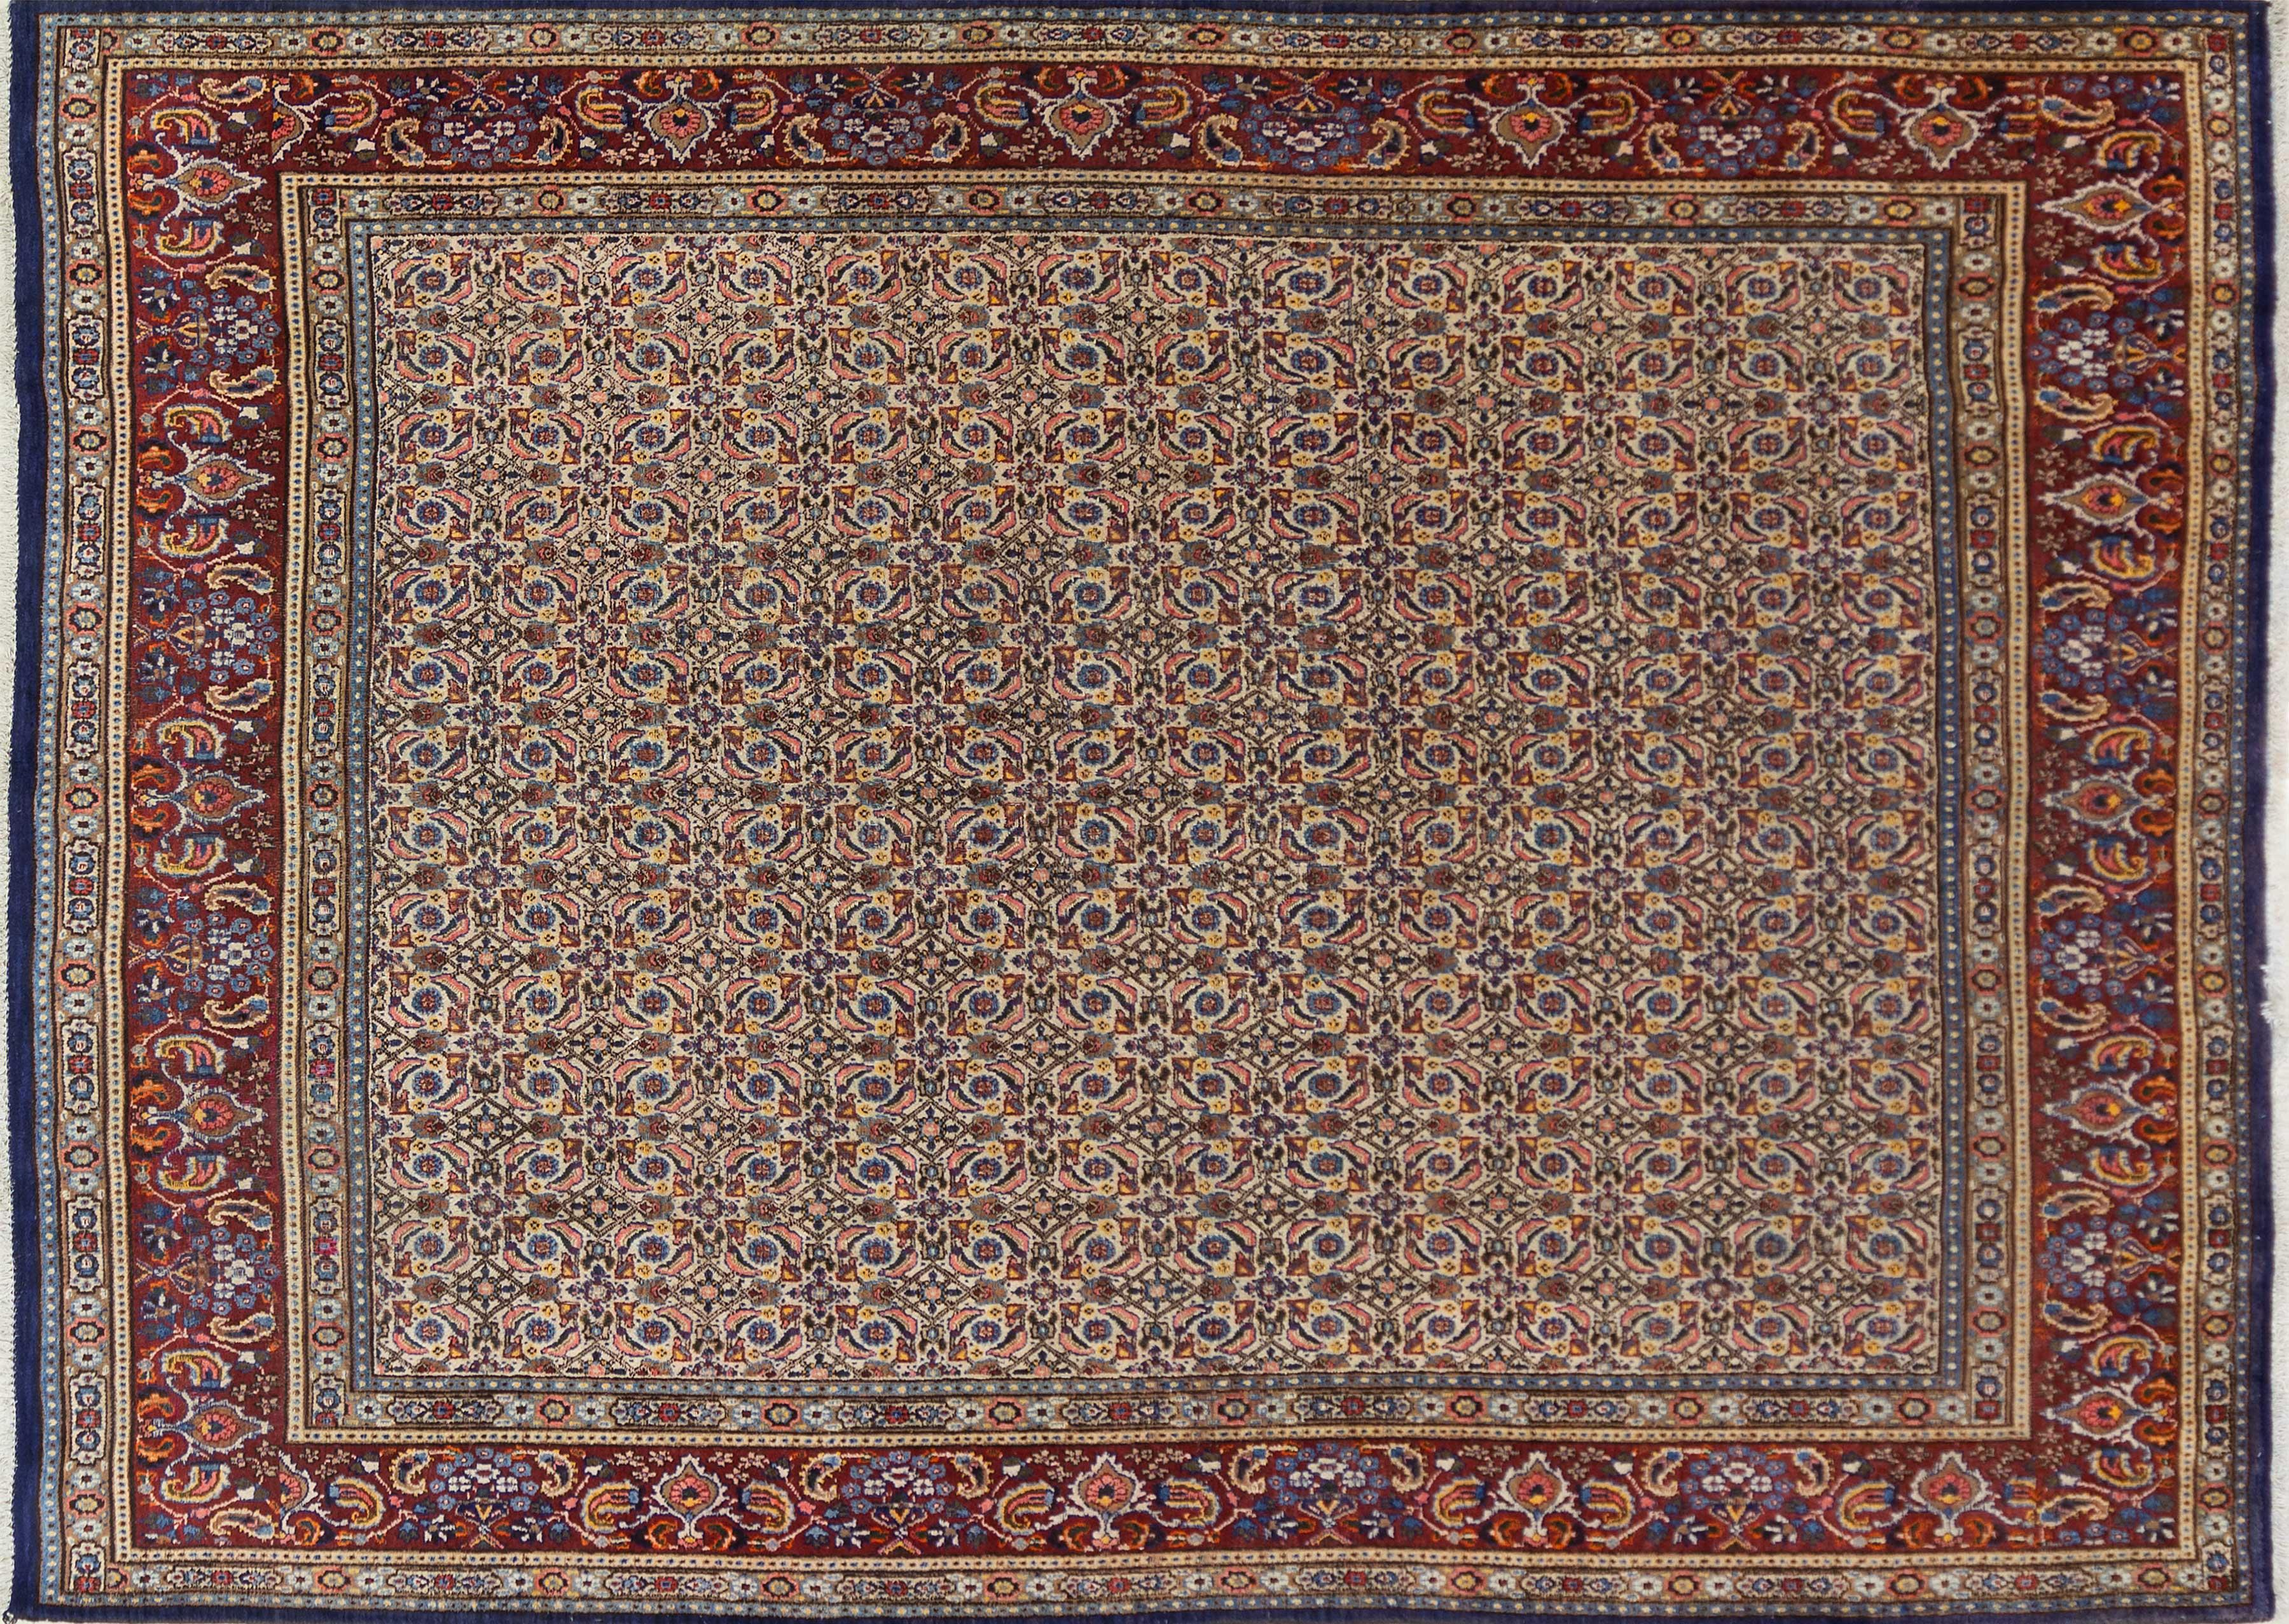 A Persian Hand Knotted Mood Carpet, 314 x 230